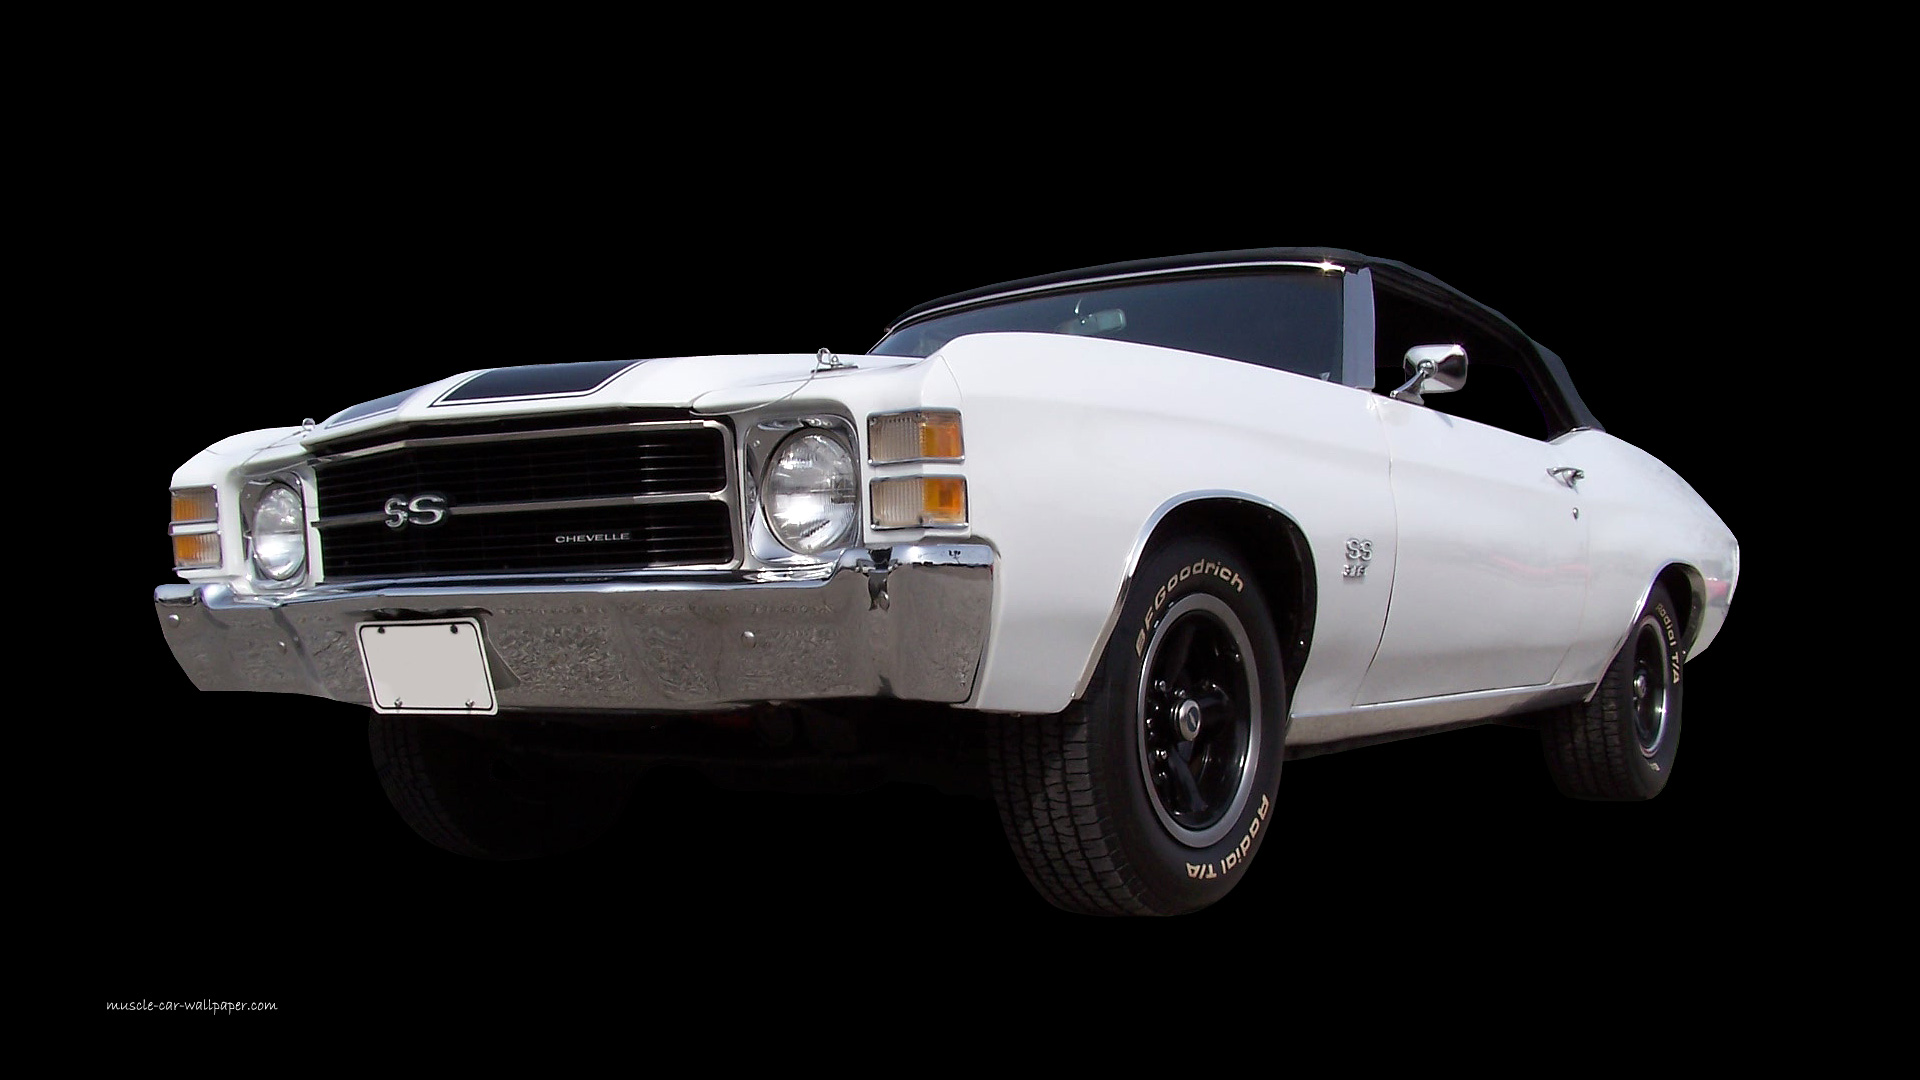 White Muscle Cars Images Muscle Cars